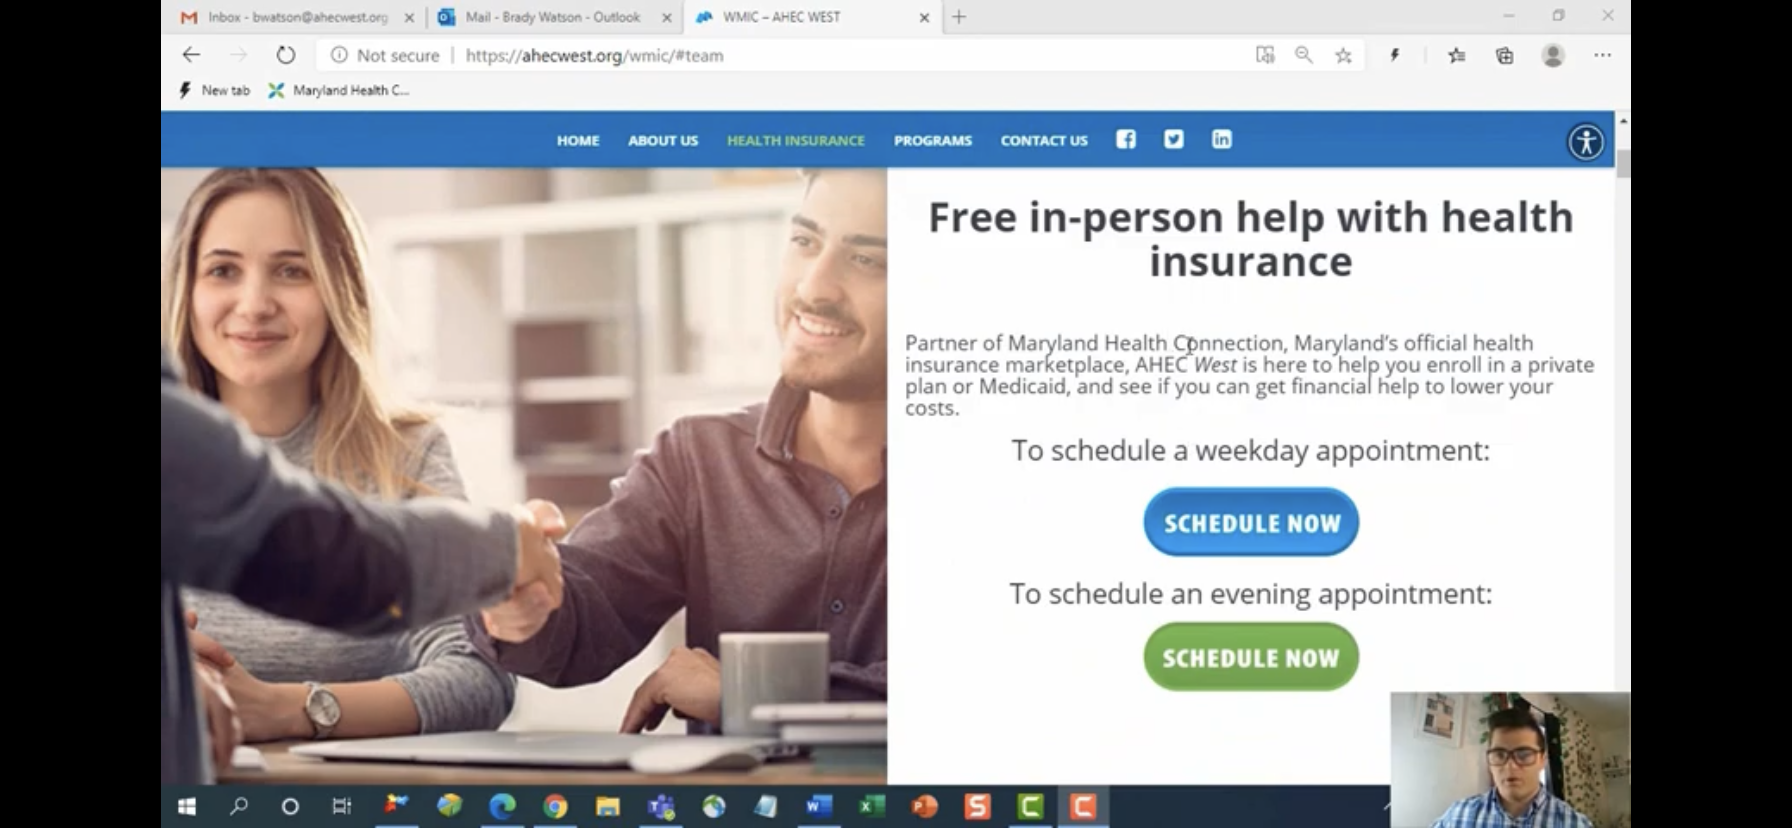 How To: Schedule An Appointment With Western Maryland Health Insurance Connector, By AHEC West – +3 Prize Points